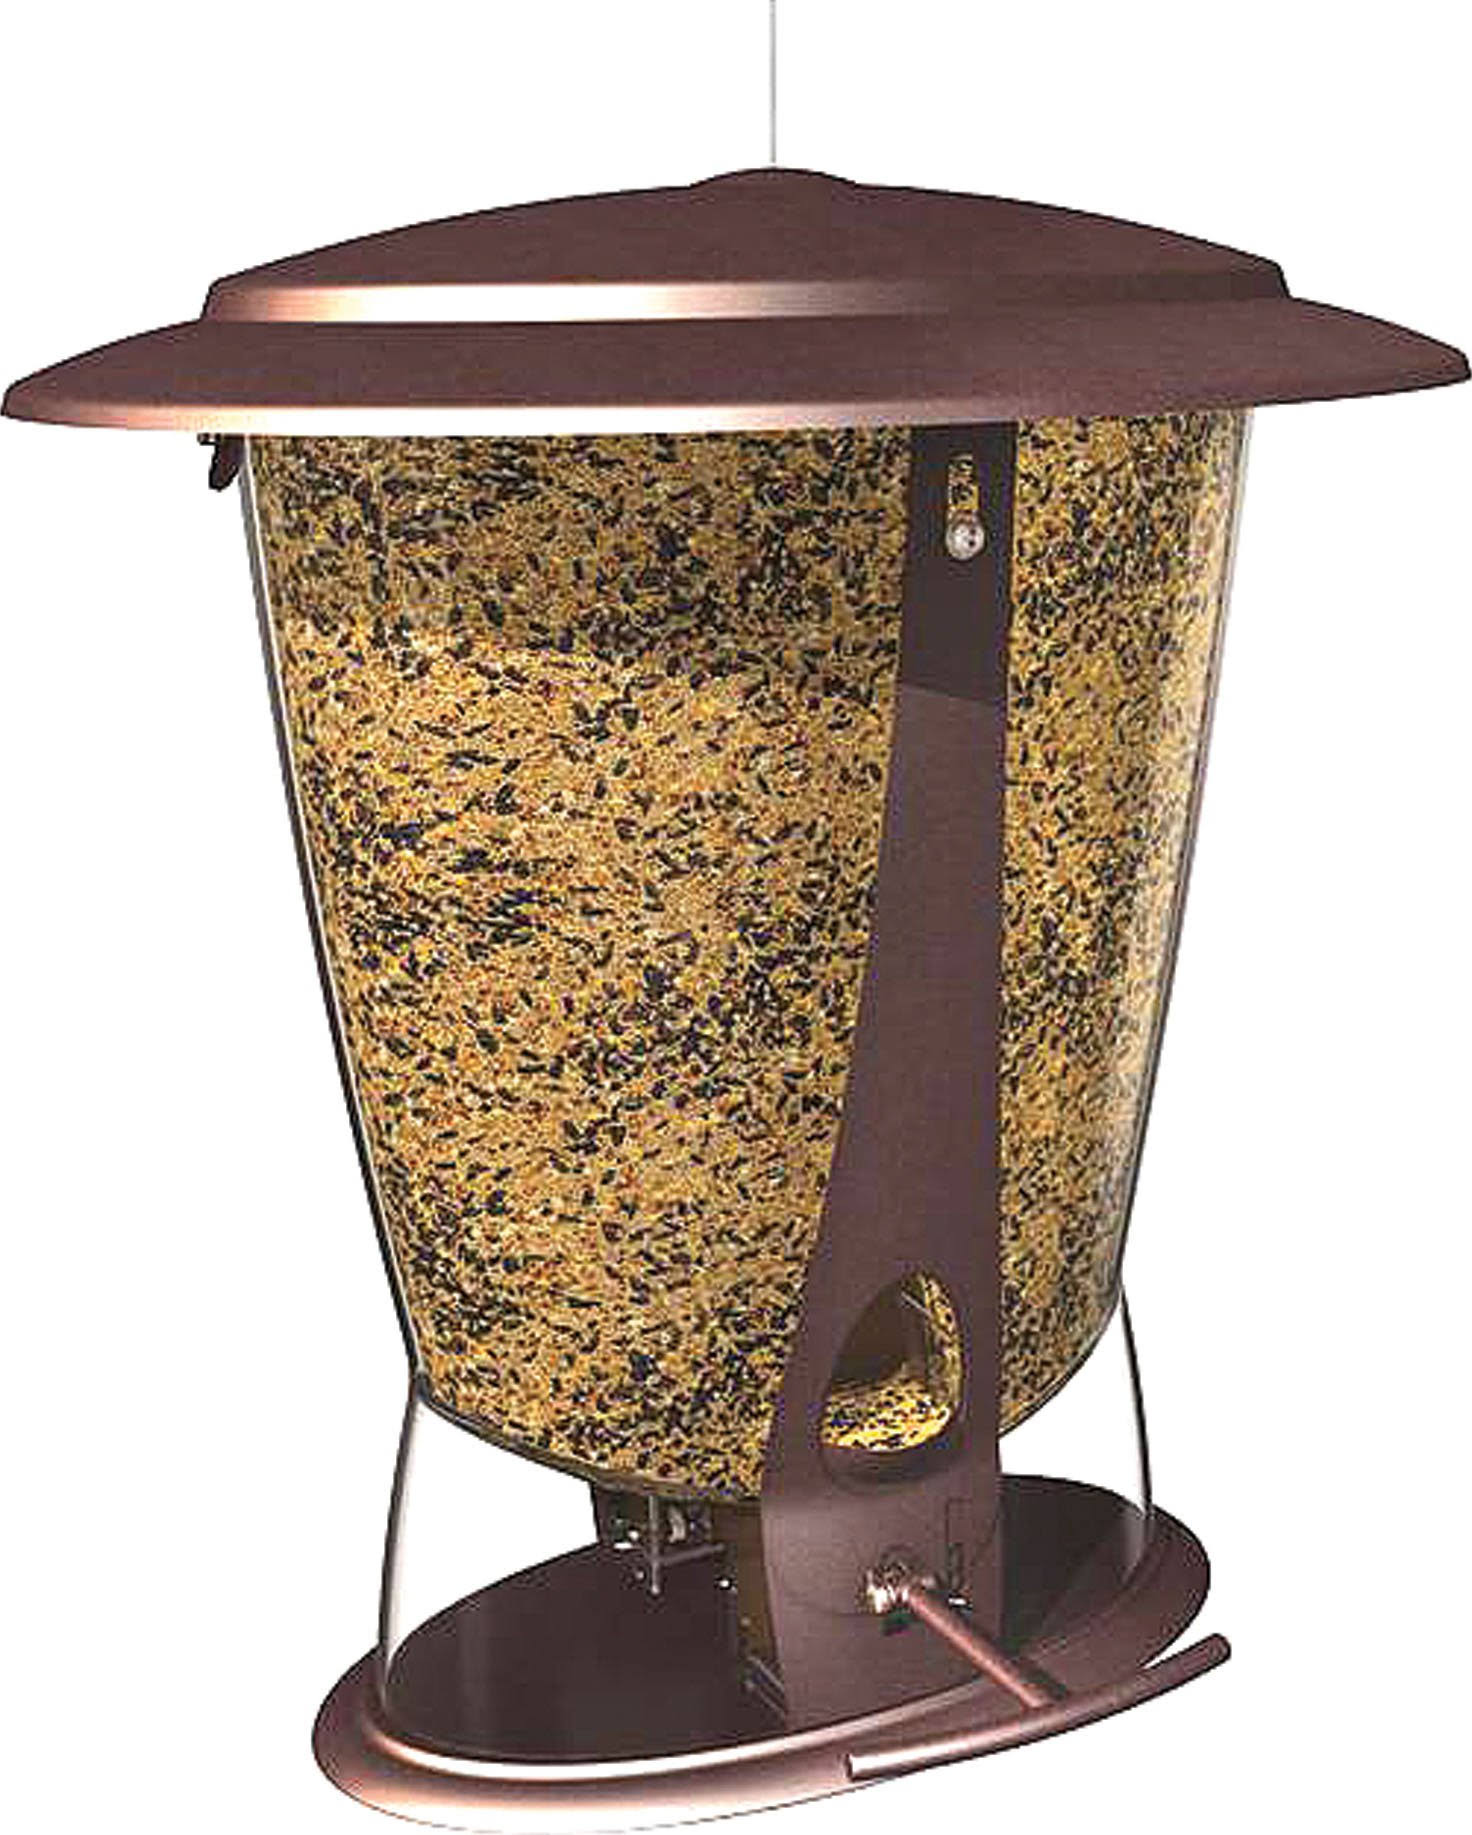 Classic Brands X-2 Squirrel Proof Bird Feeder - 4lb Capacity